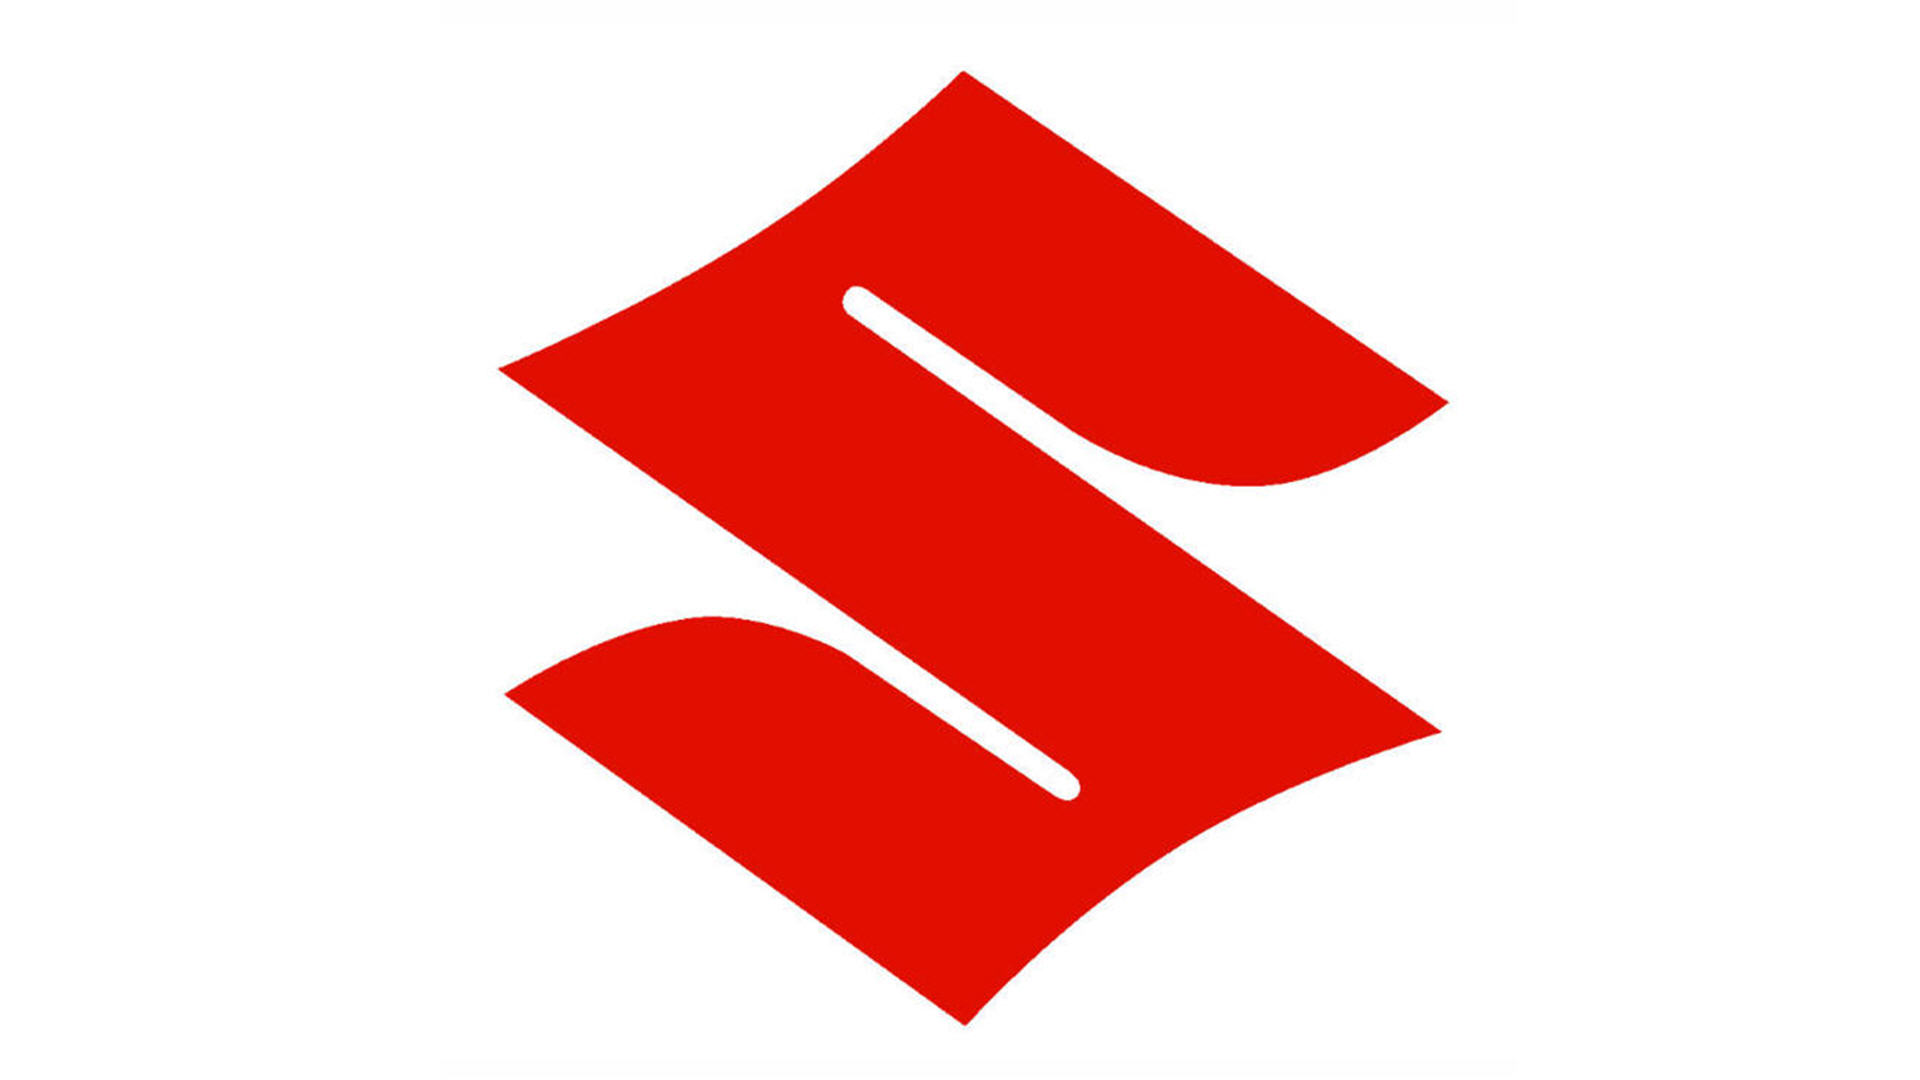 Suzuki Red Logo Wallpaper